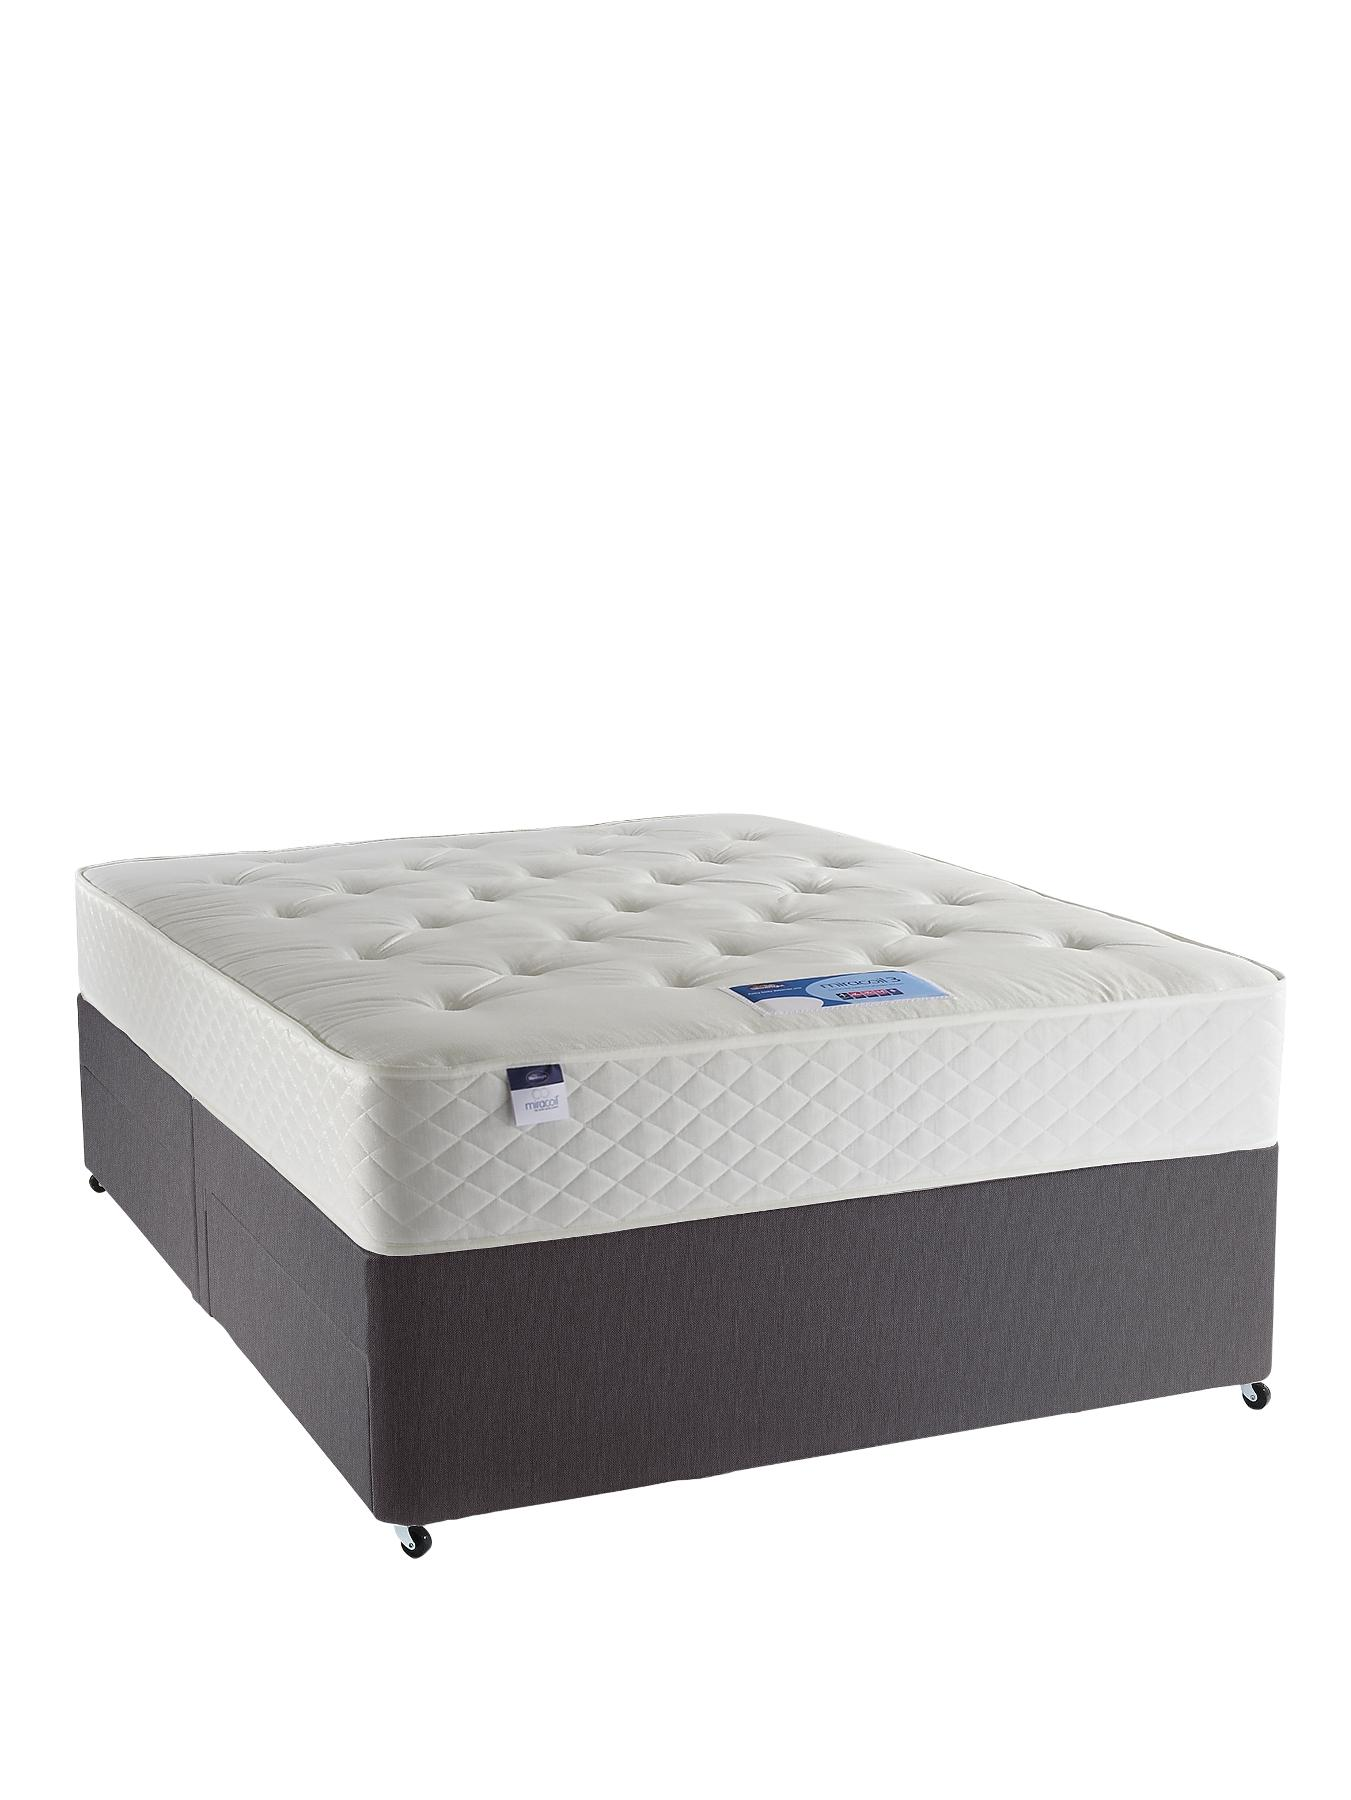 Miracoil 3 Tuscany Divan Bed - Medium Firm, Charcoal,Beige,White